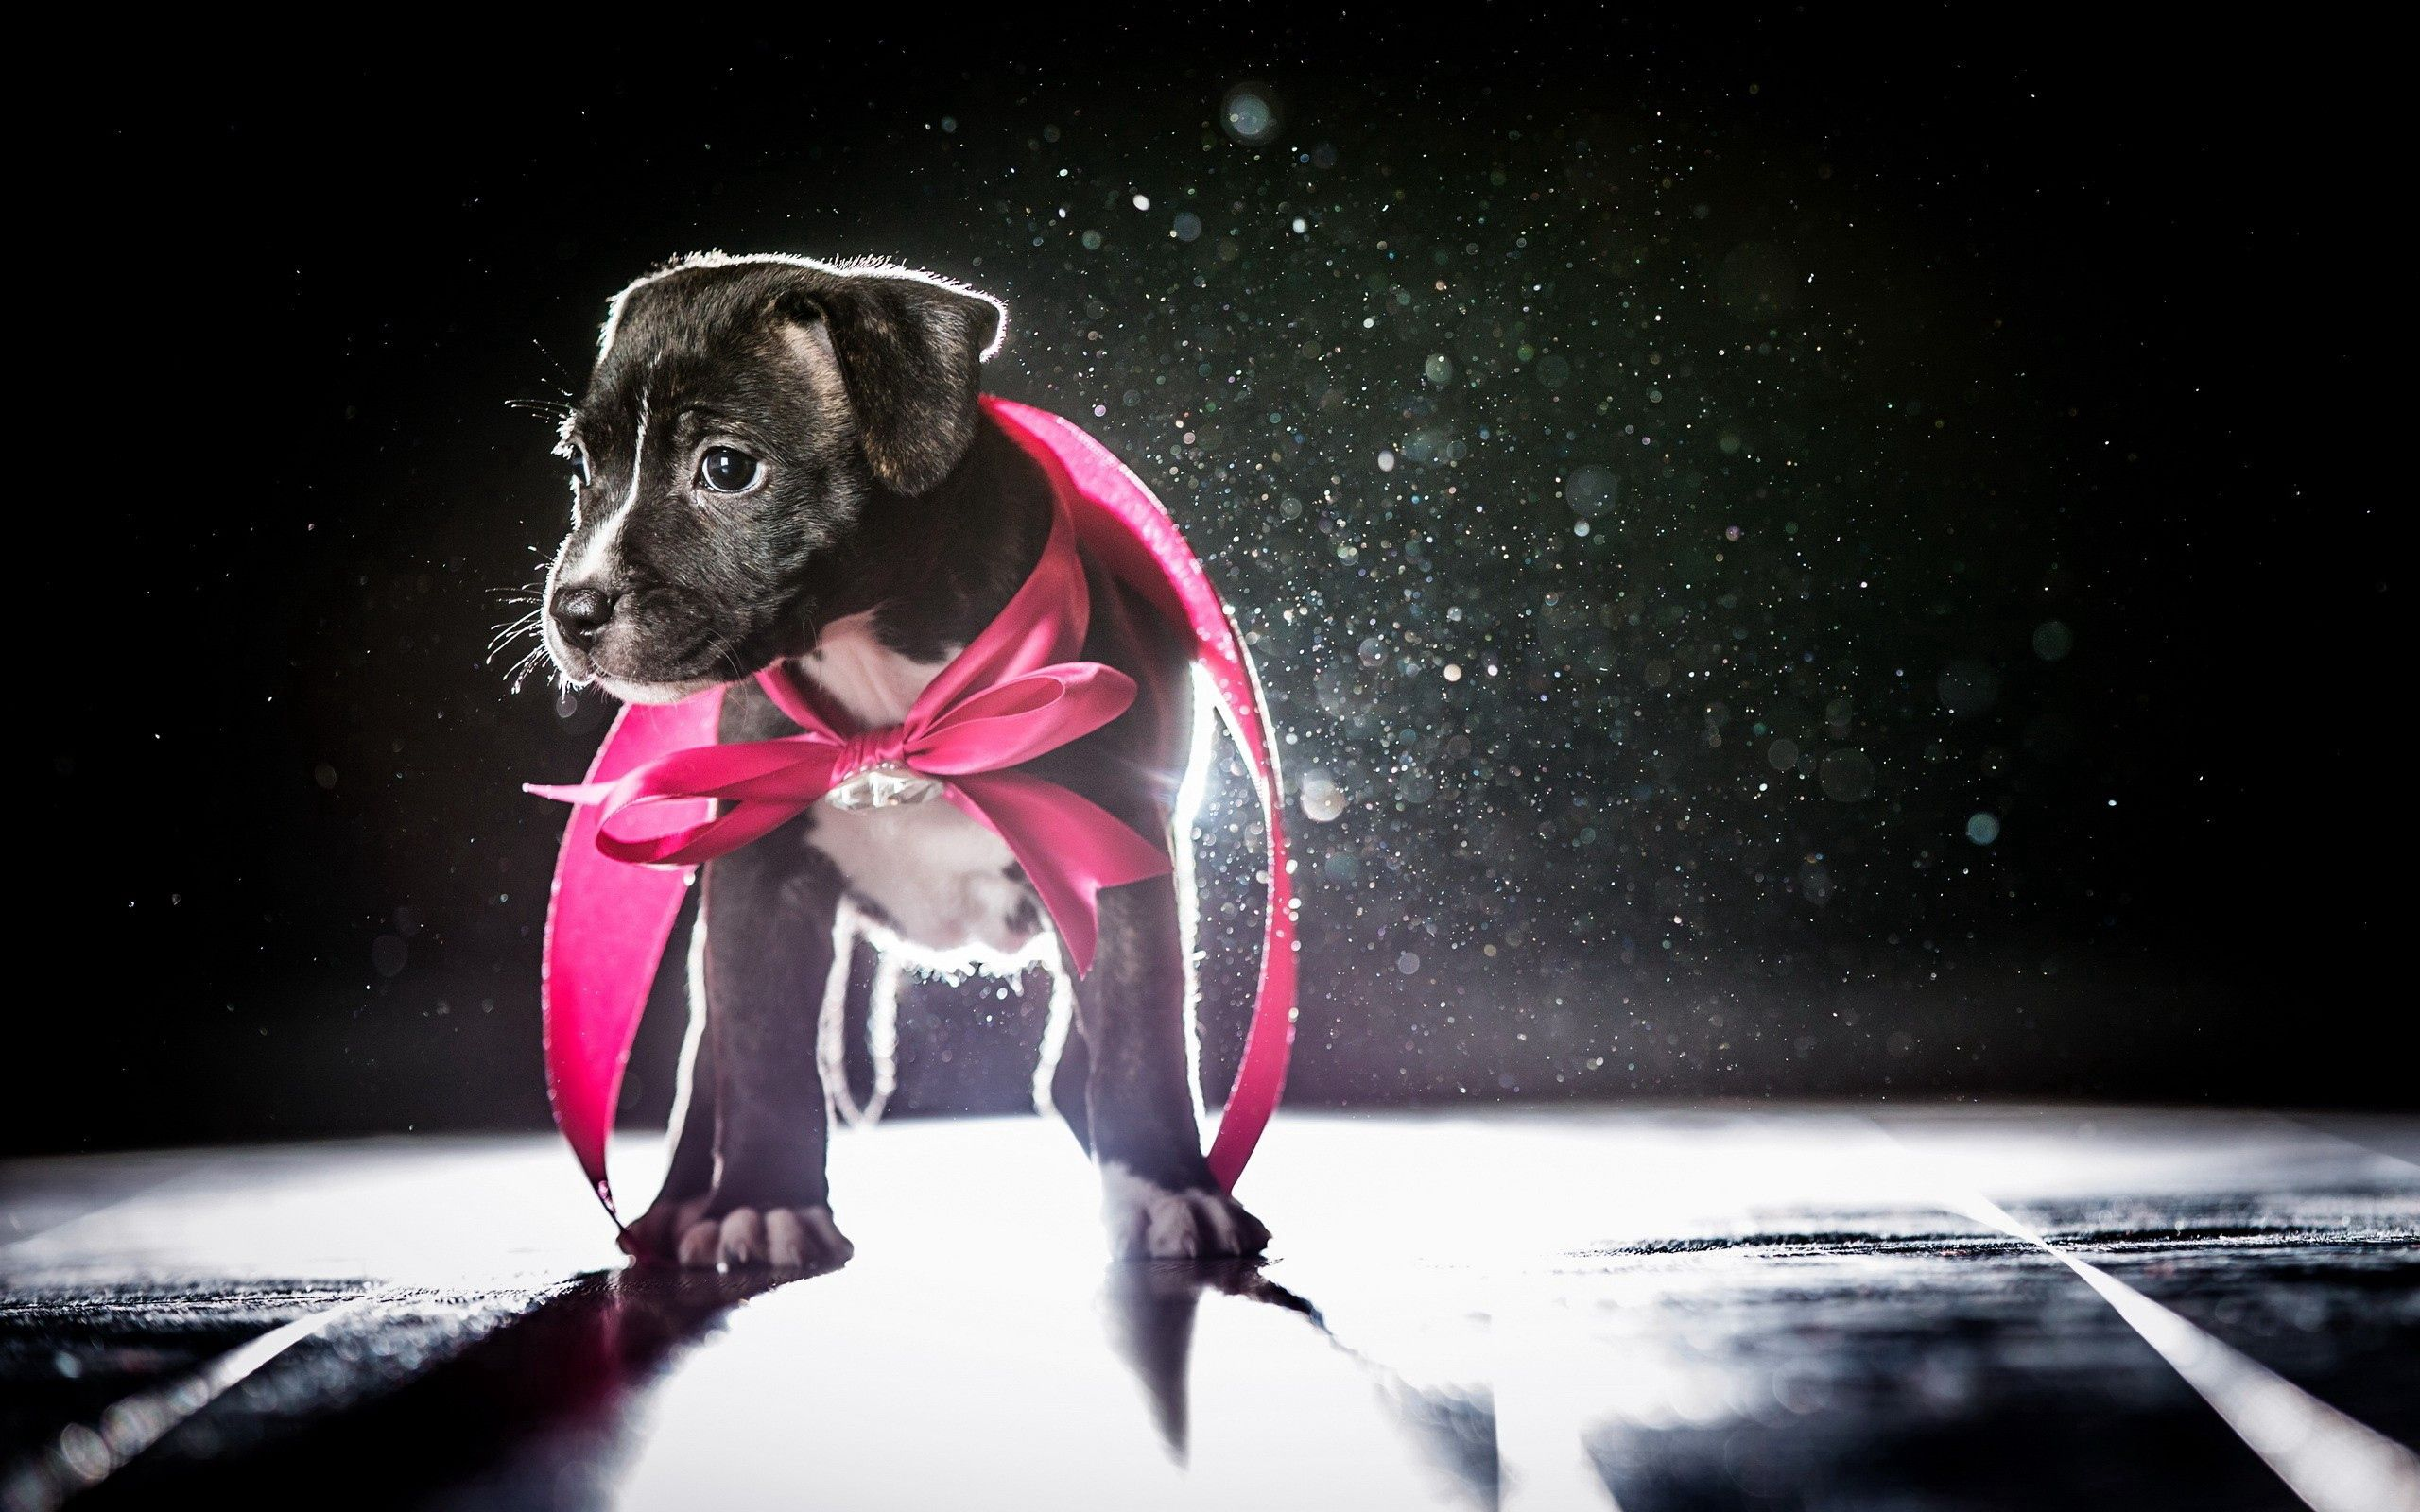 63454 download wallpaper Animals, Dog, Puppy, Bow, Shadow, Shine, Light screensavers and pictures for free